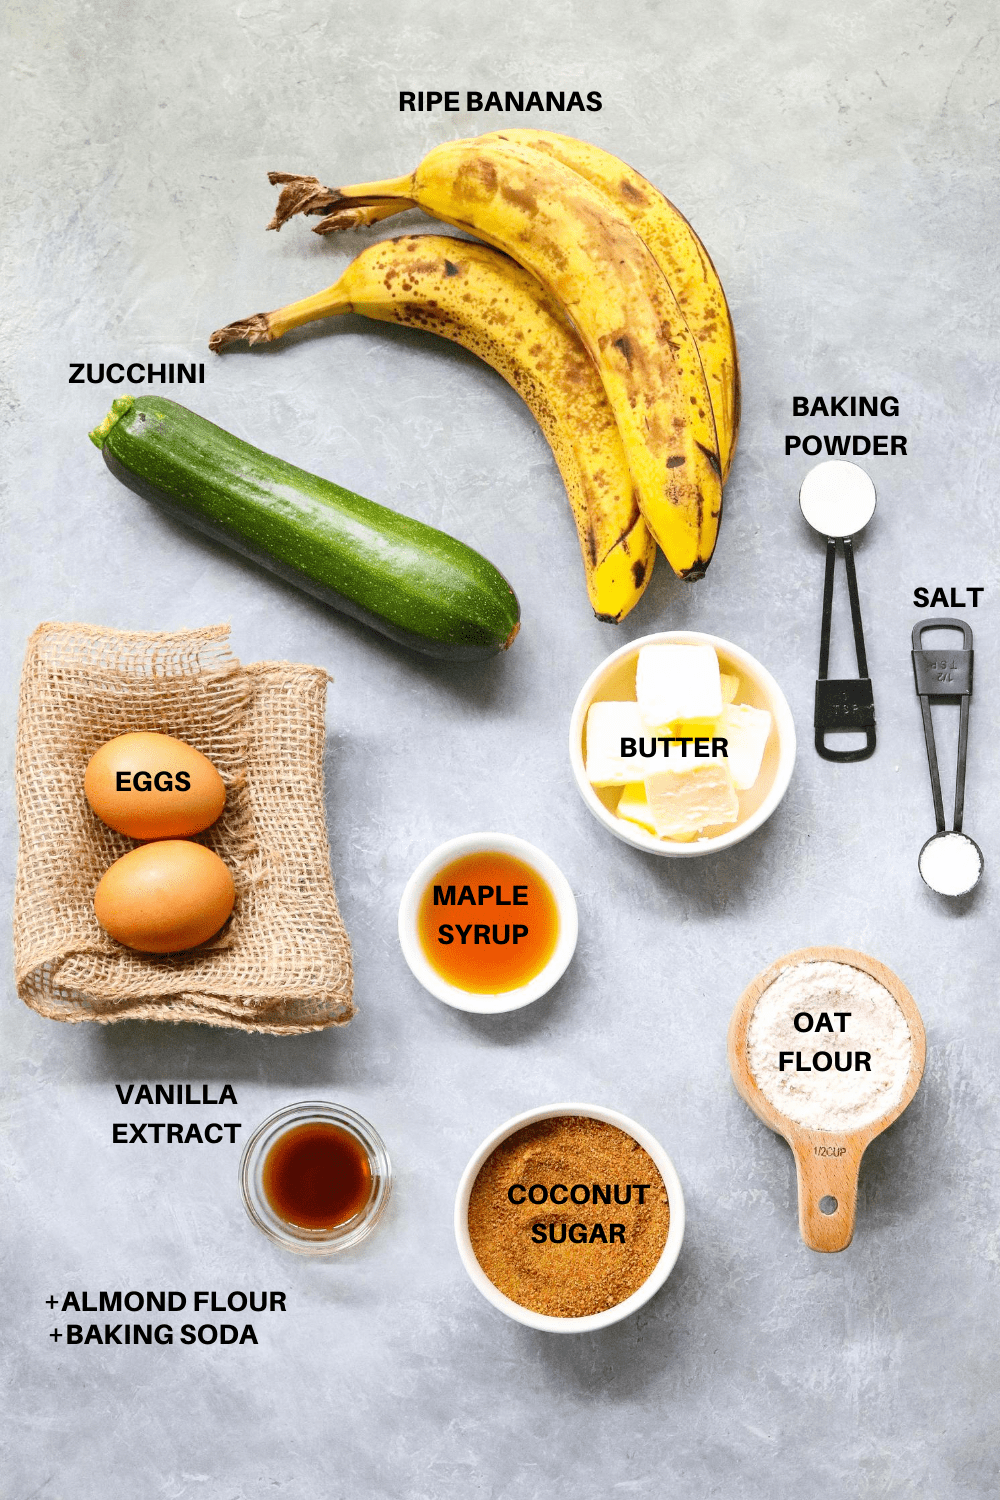 Ripe bananas, zucchini, butter, eggs and flour on a gray board